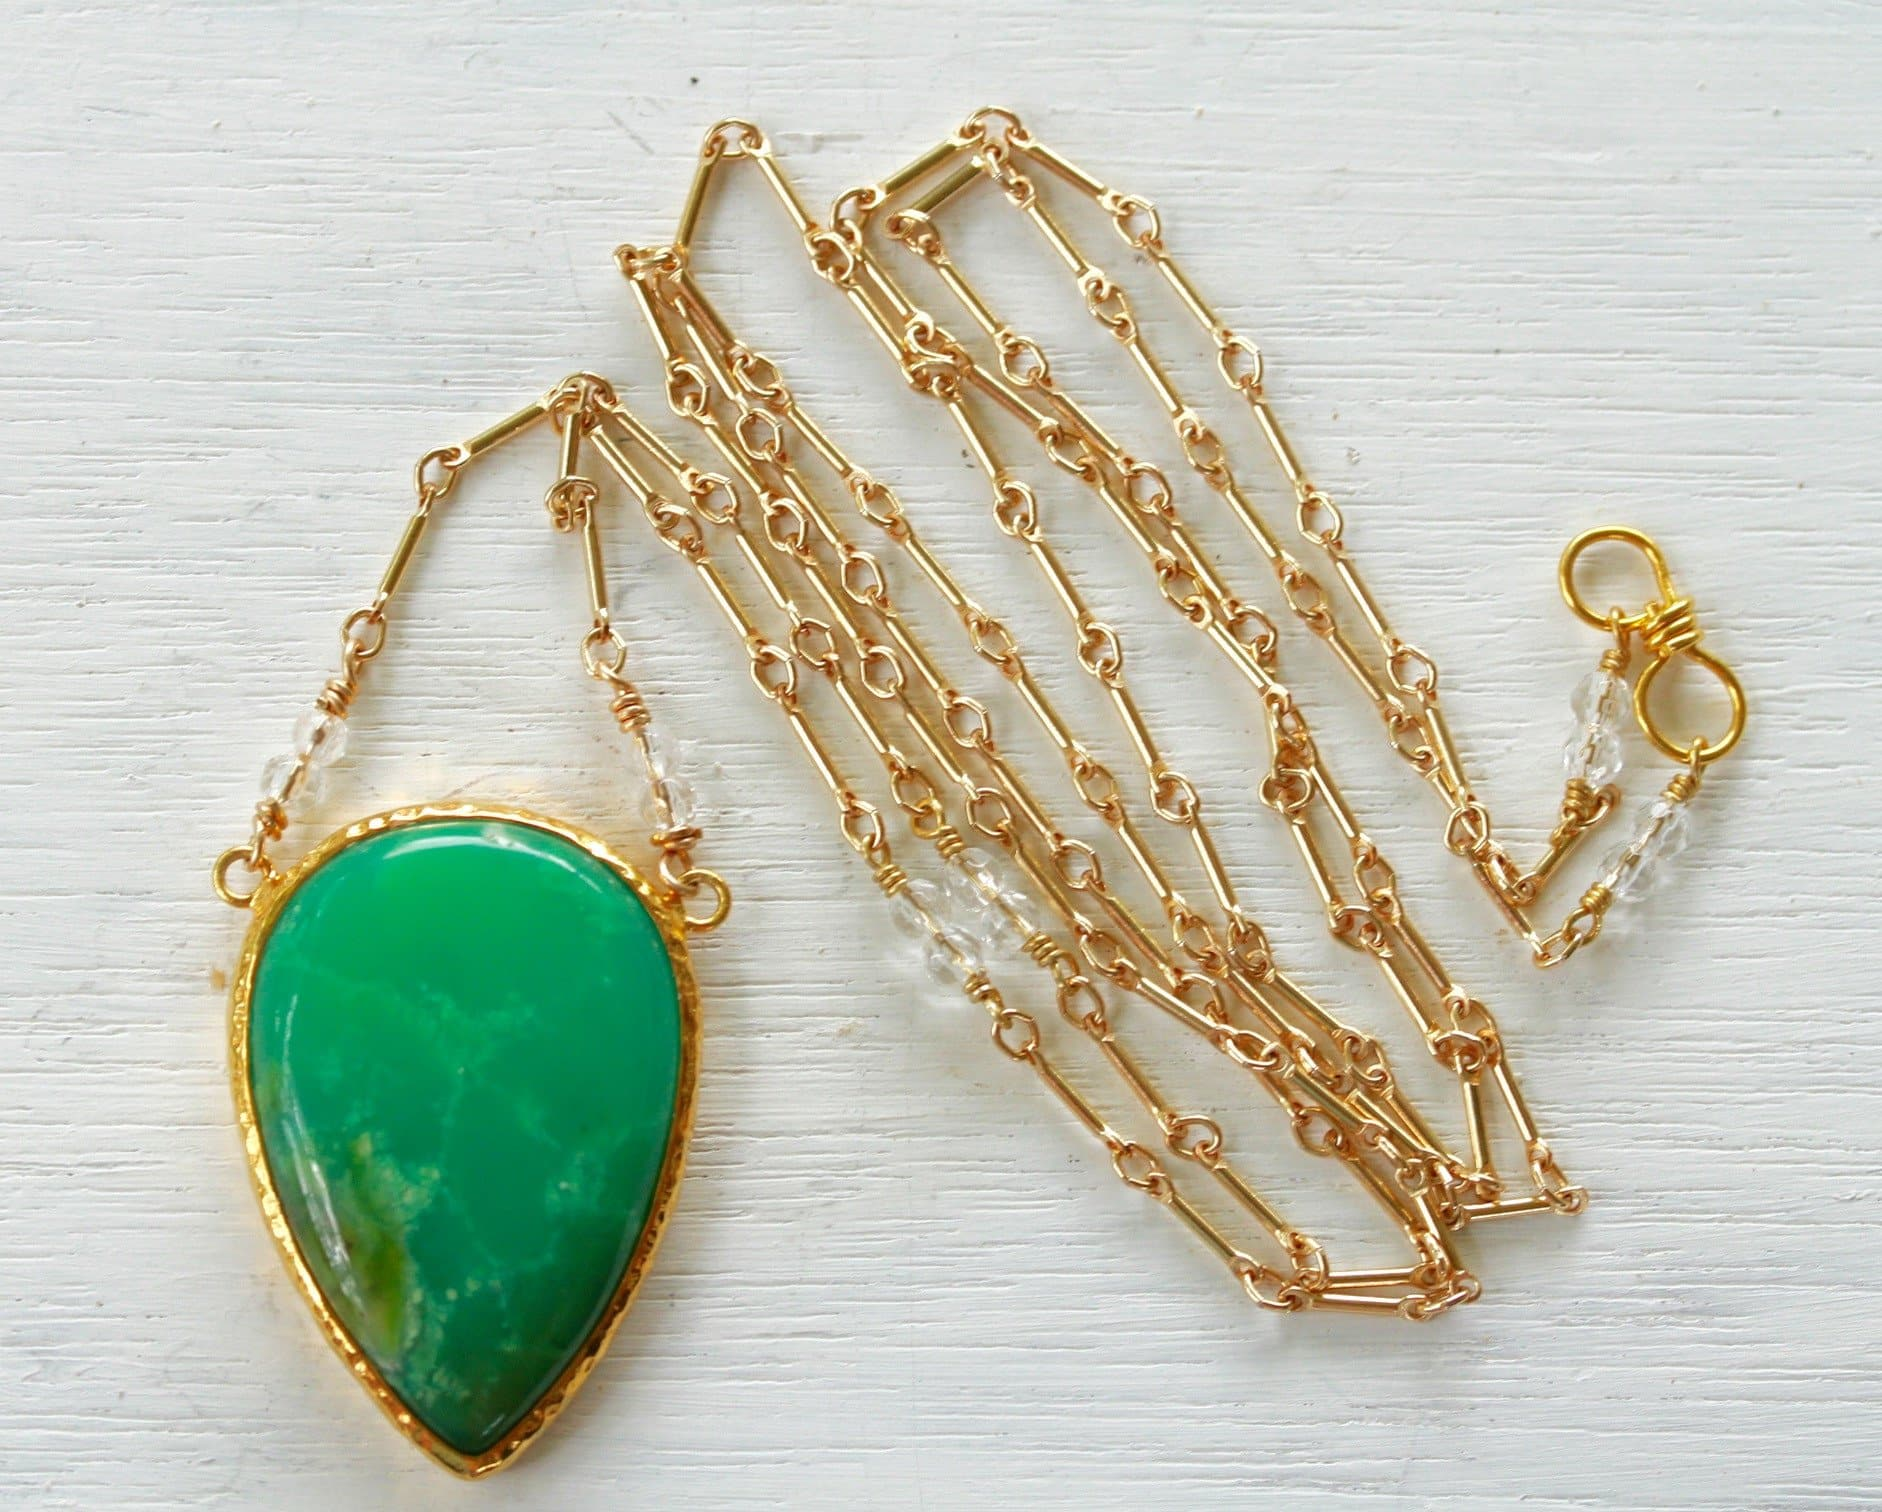 necklace pm products jewels bahgsu shot gold screen chrysoprase at